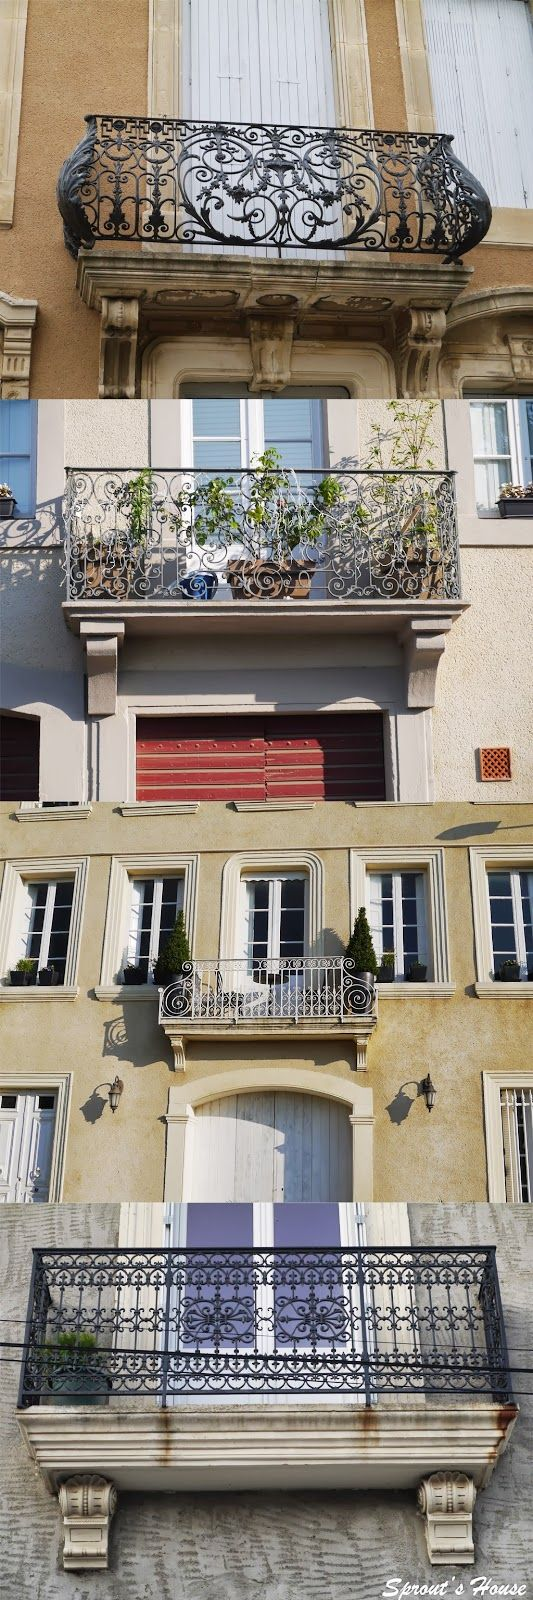 Sprout's House: French Balcony and Railing inspiration!